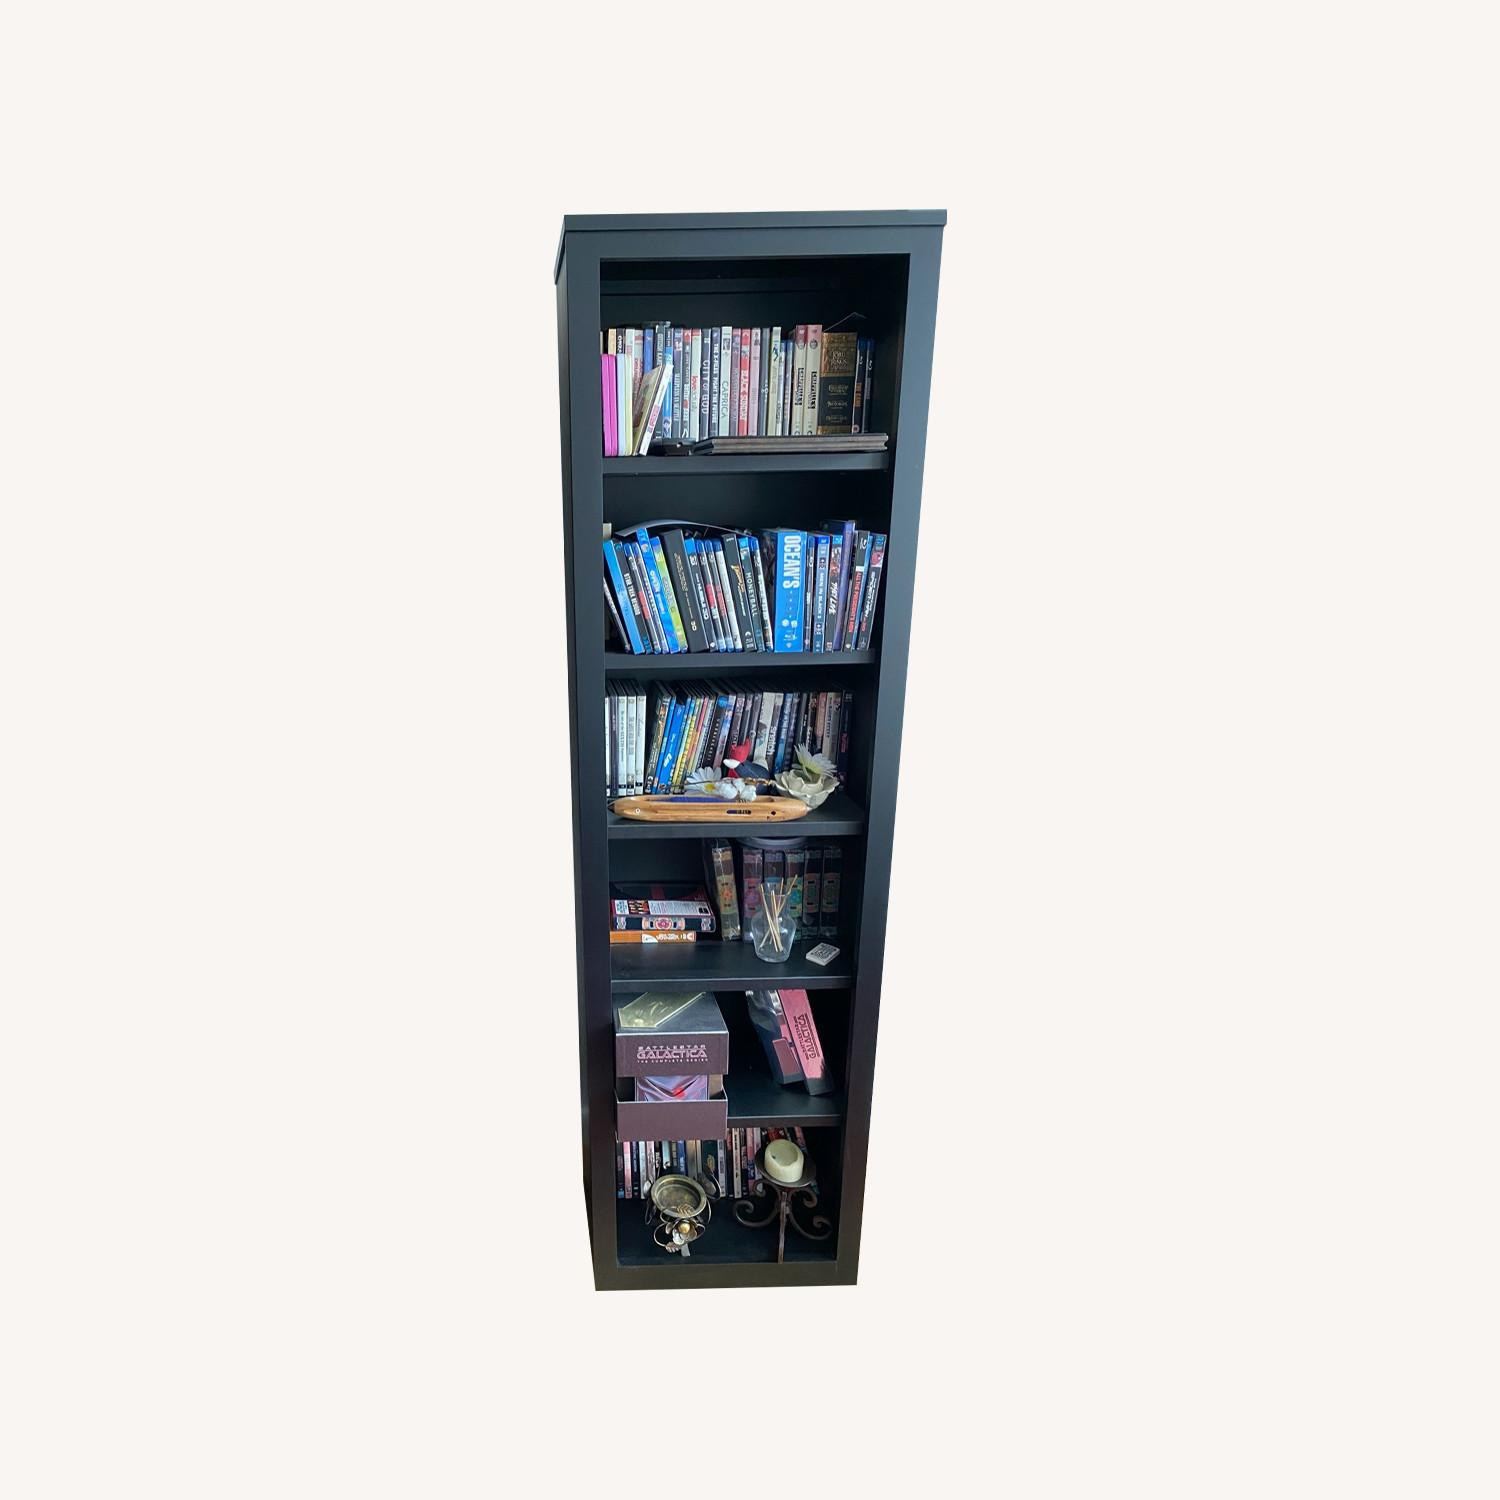 Room & Board Bookshelves - image-0